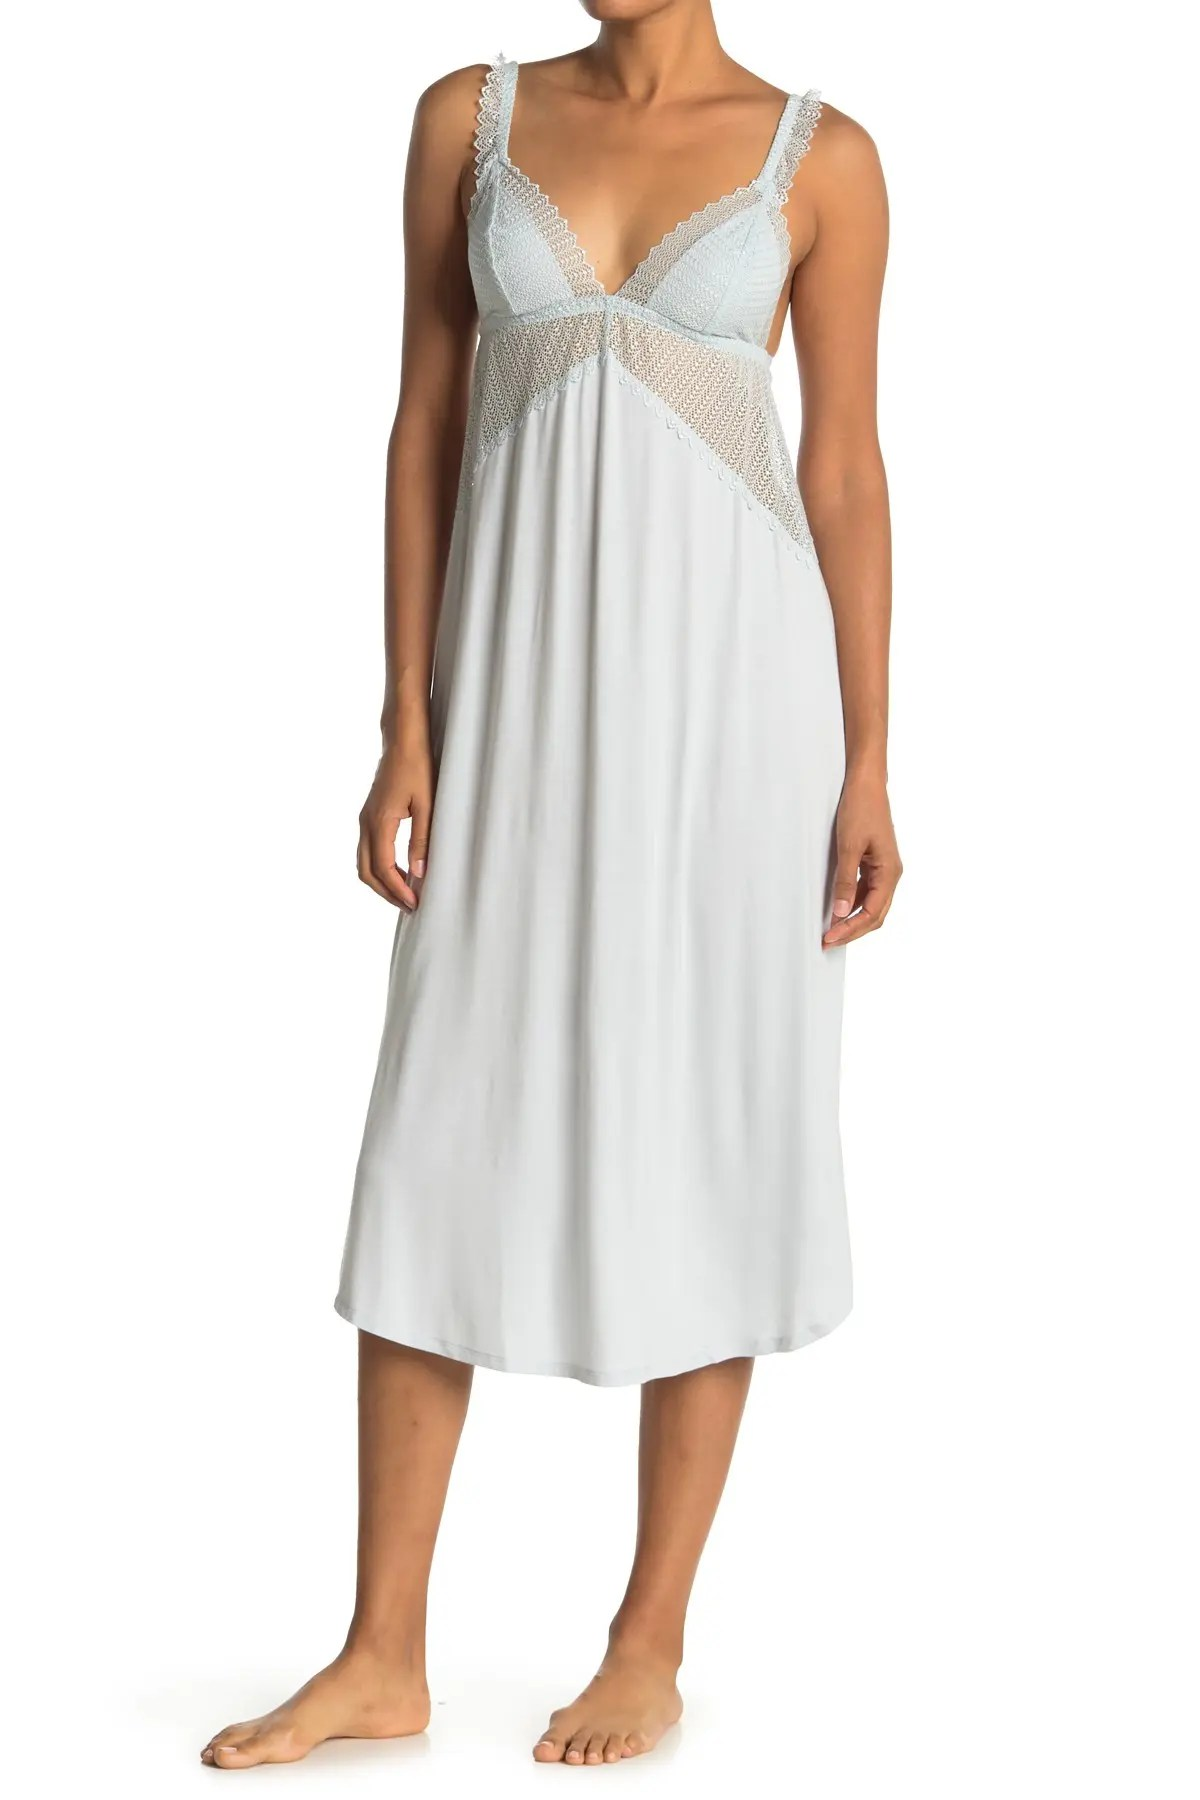 eberjey phoebe luxe lace trim nightgown nordstrom rack